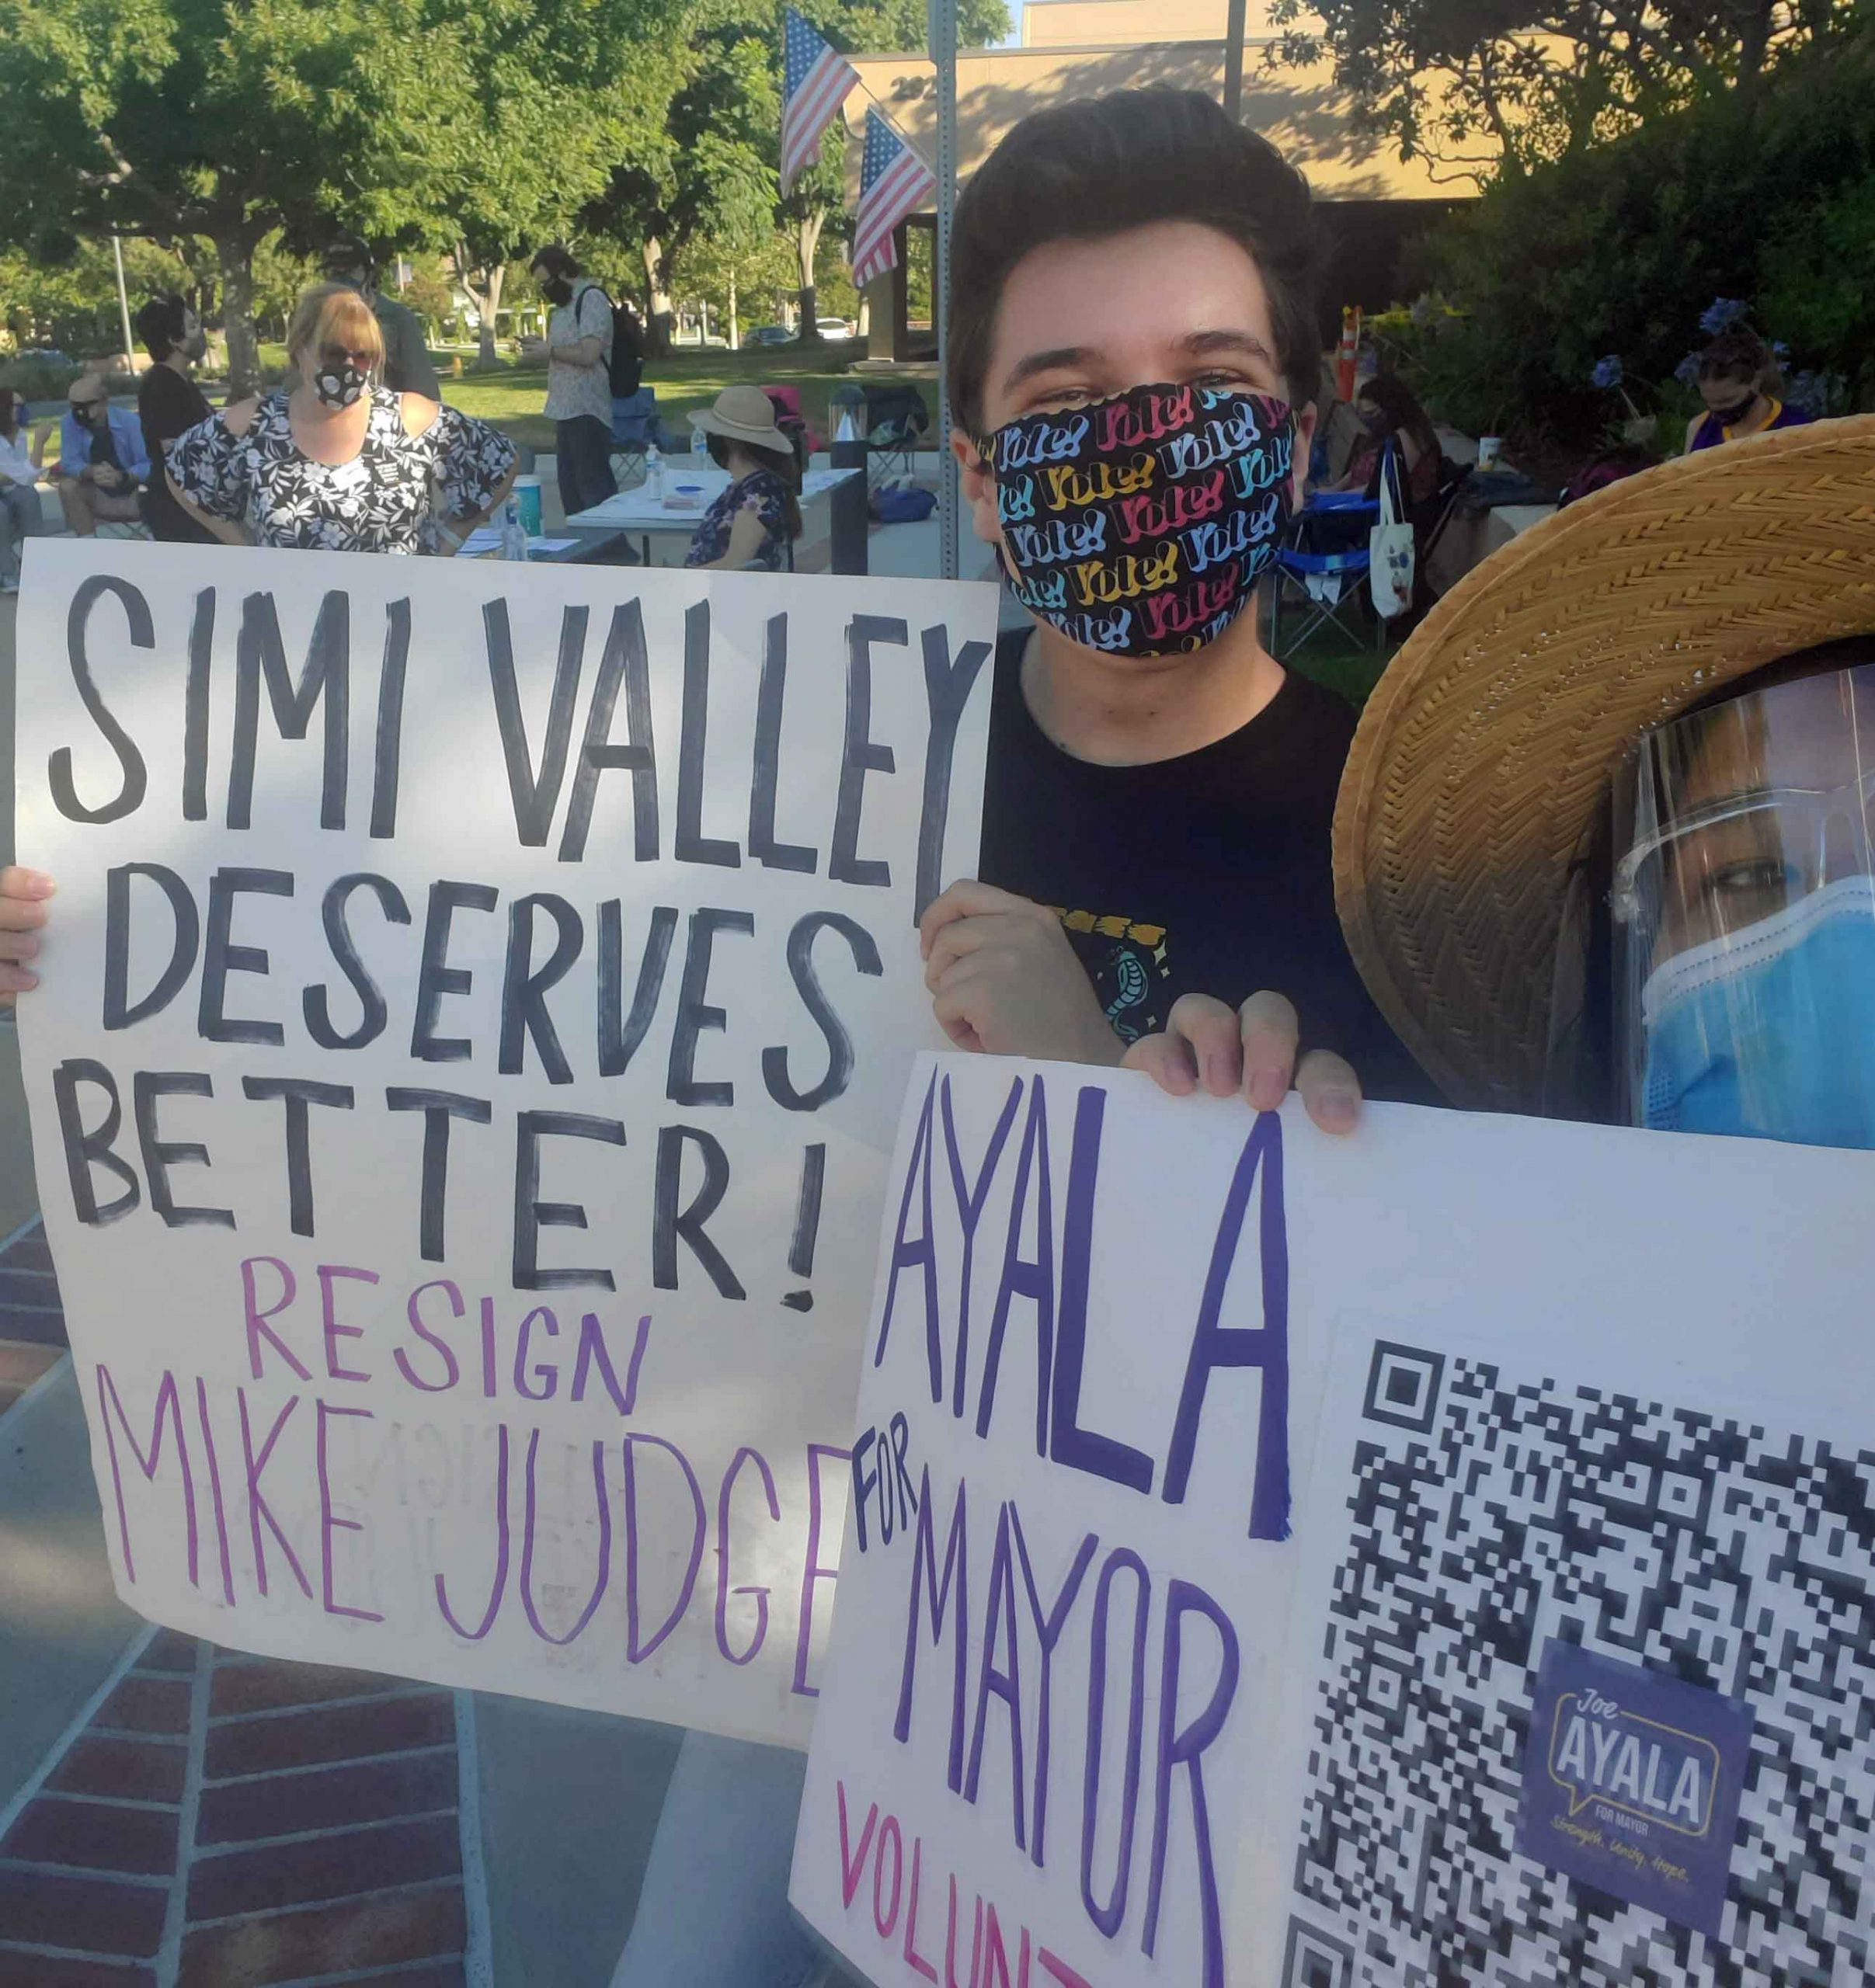 Simi Valley Support